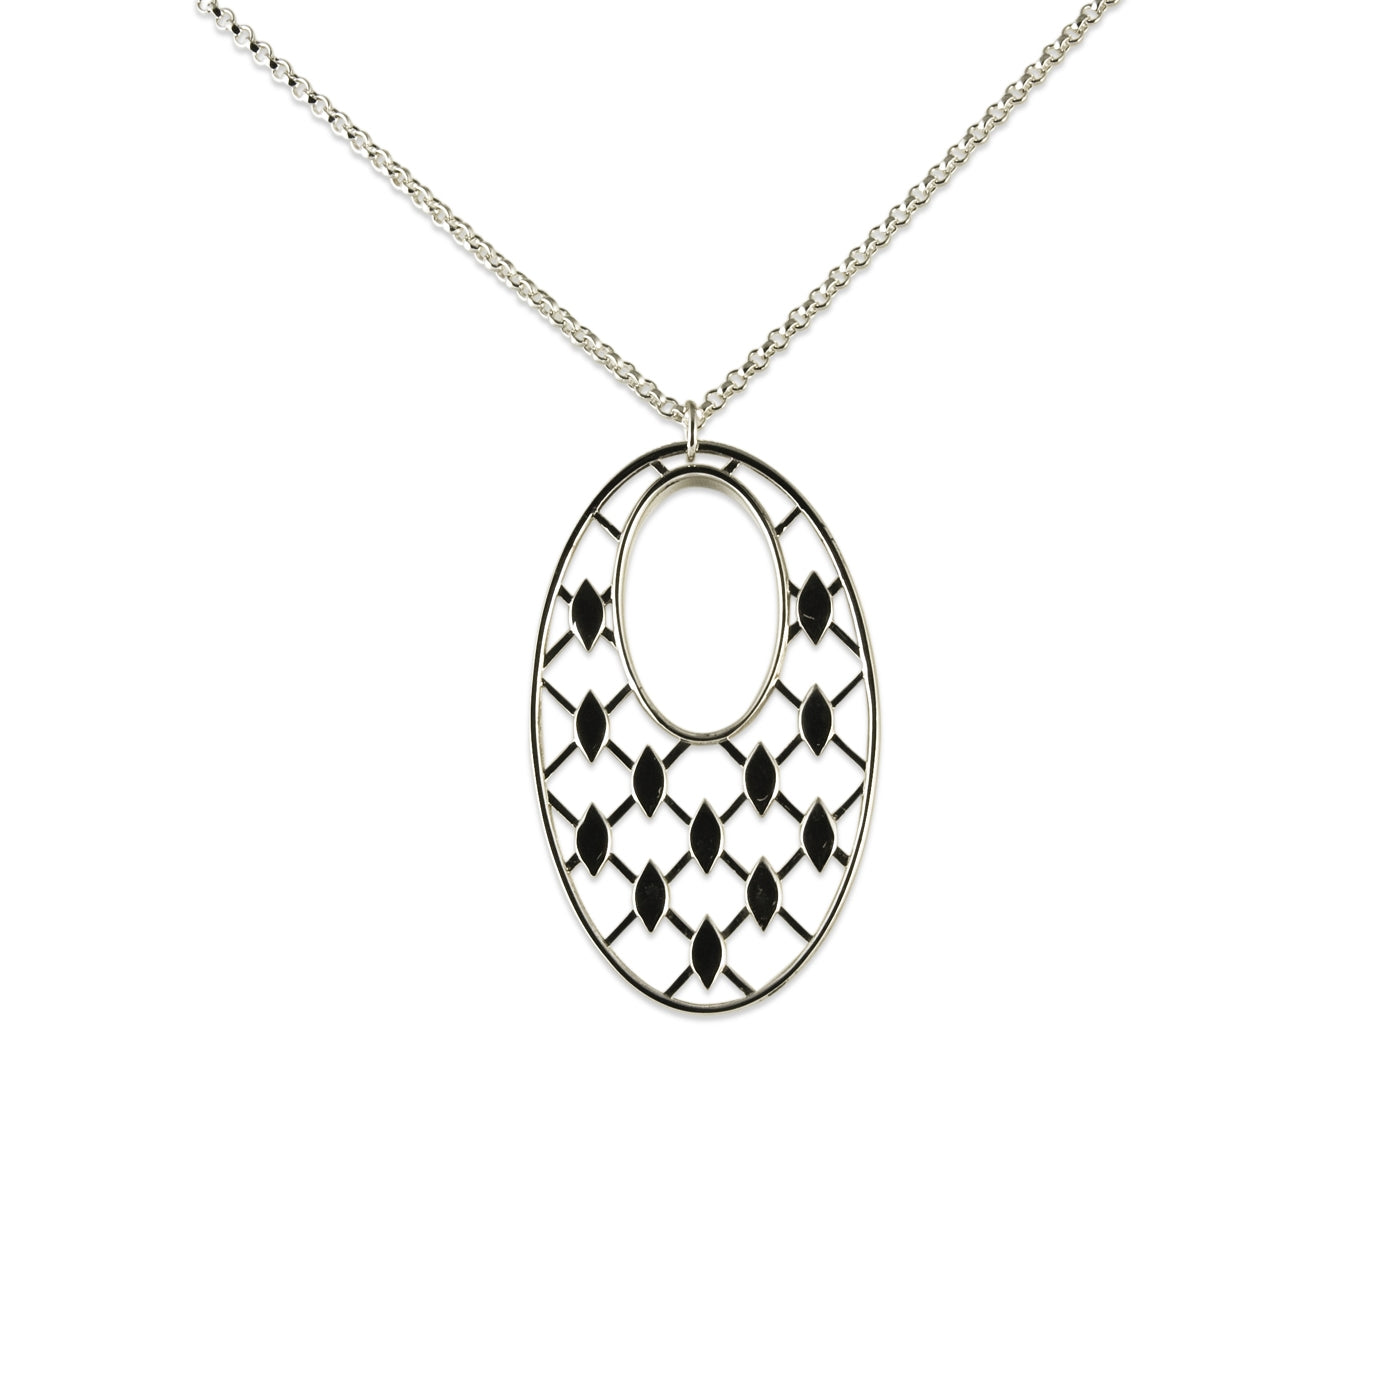 Oval Casablanca Pendant, Sterling Silver